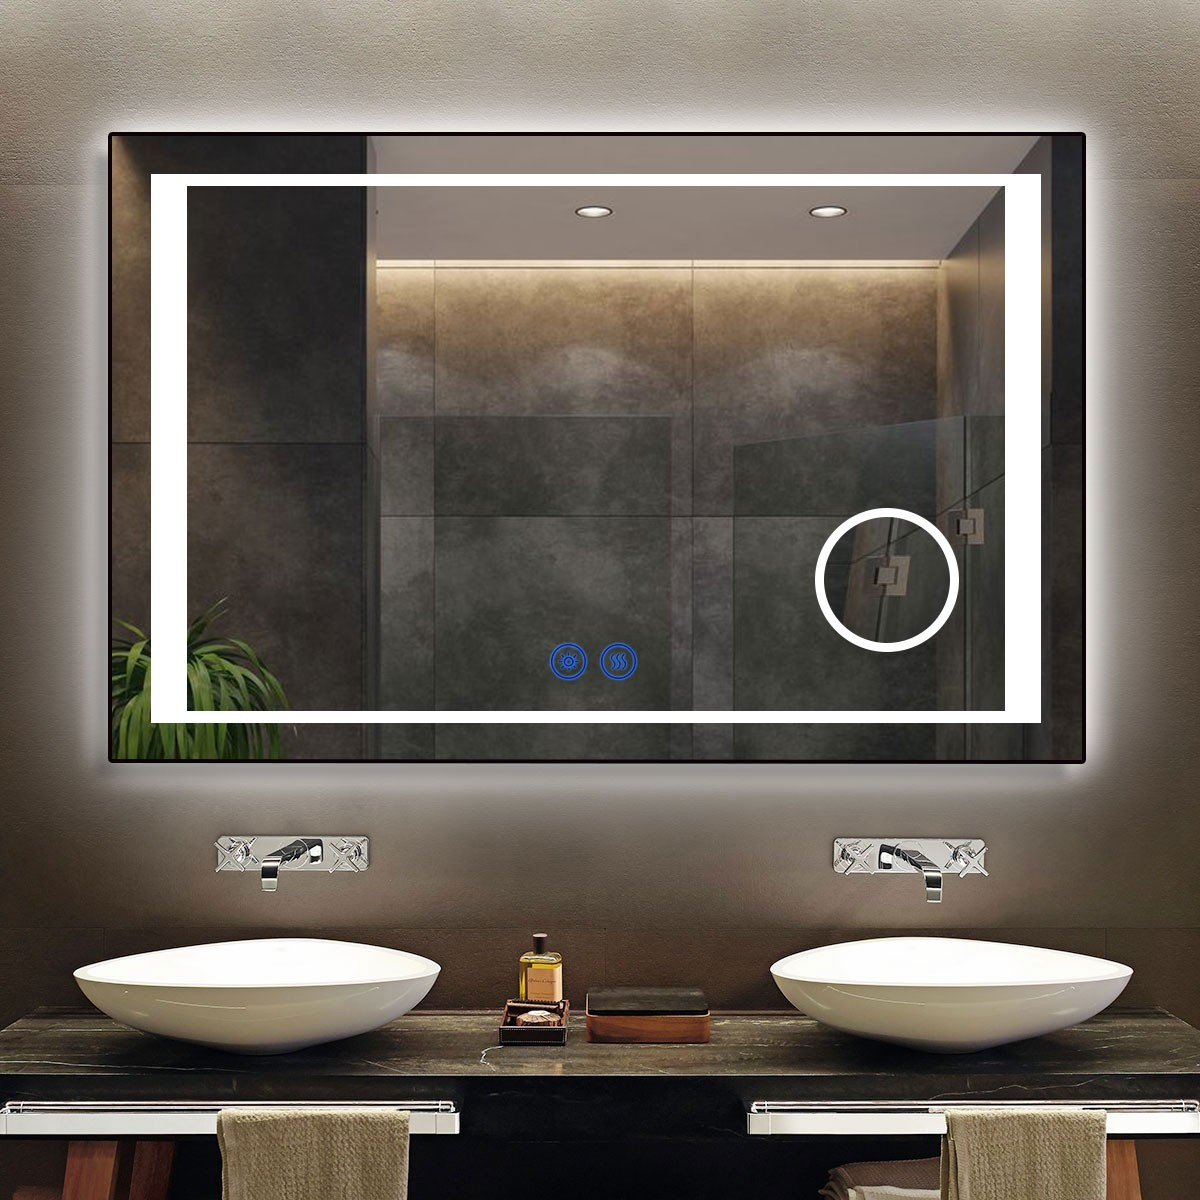 DECORAPORT 55 x 36 Inch LED Bathroom Mirror/Dress Mirror with Touch Button, Magnifier, Anti Fog, Dimmable, Vertical & Horizontal Mount (KT05-5536)